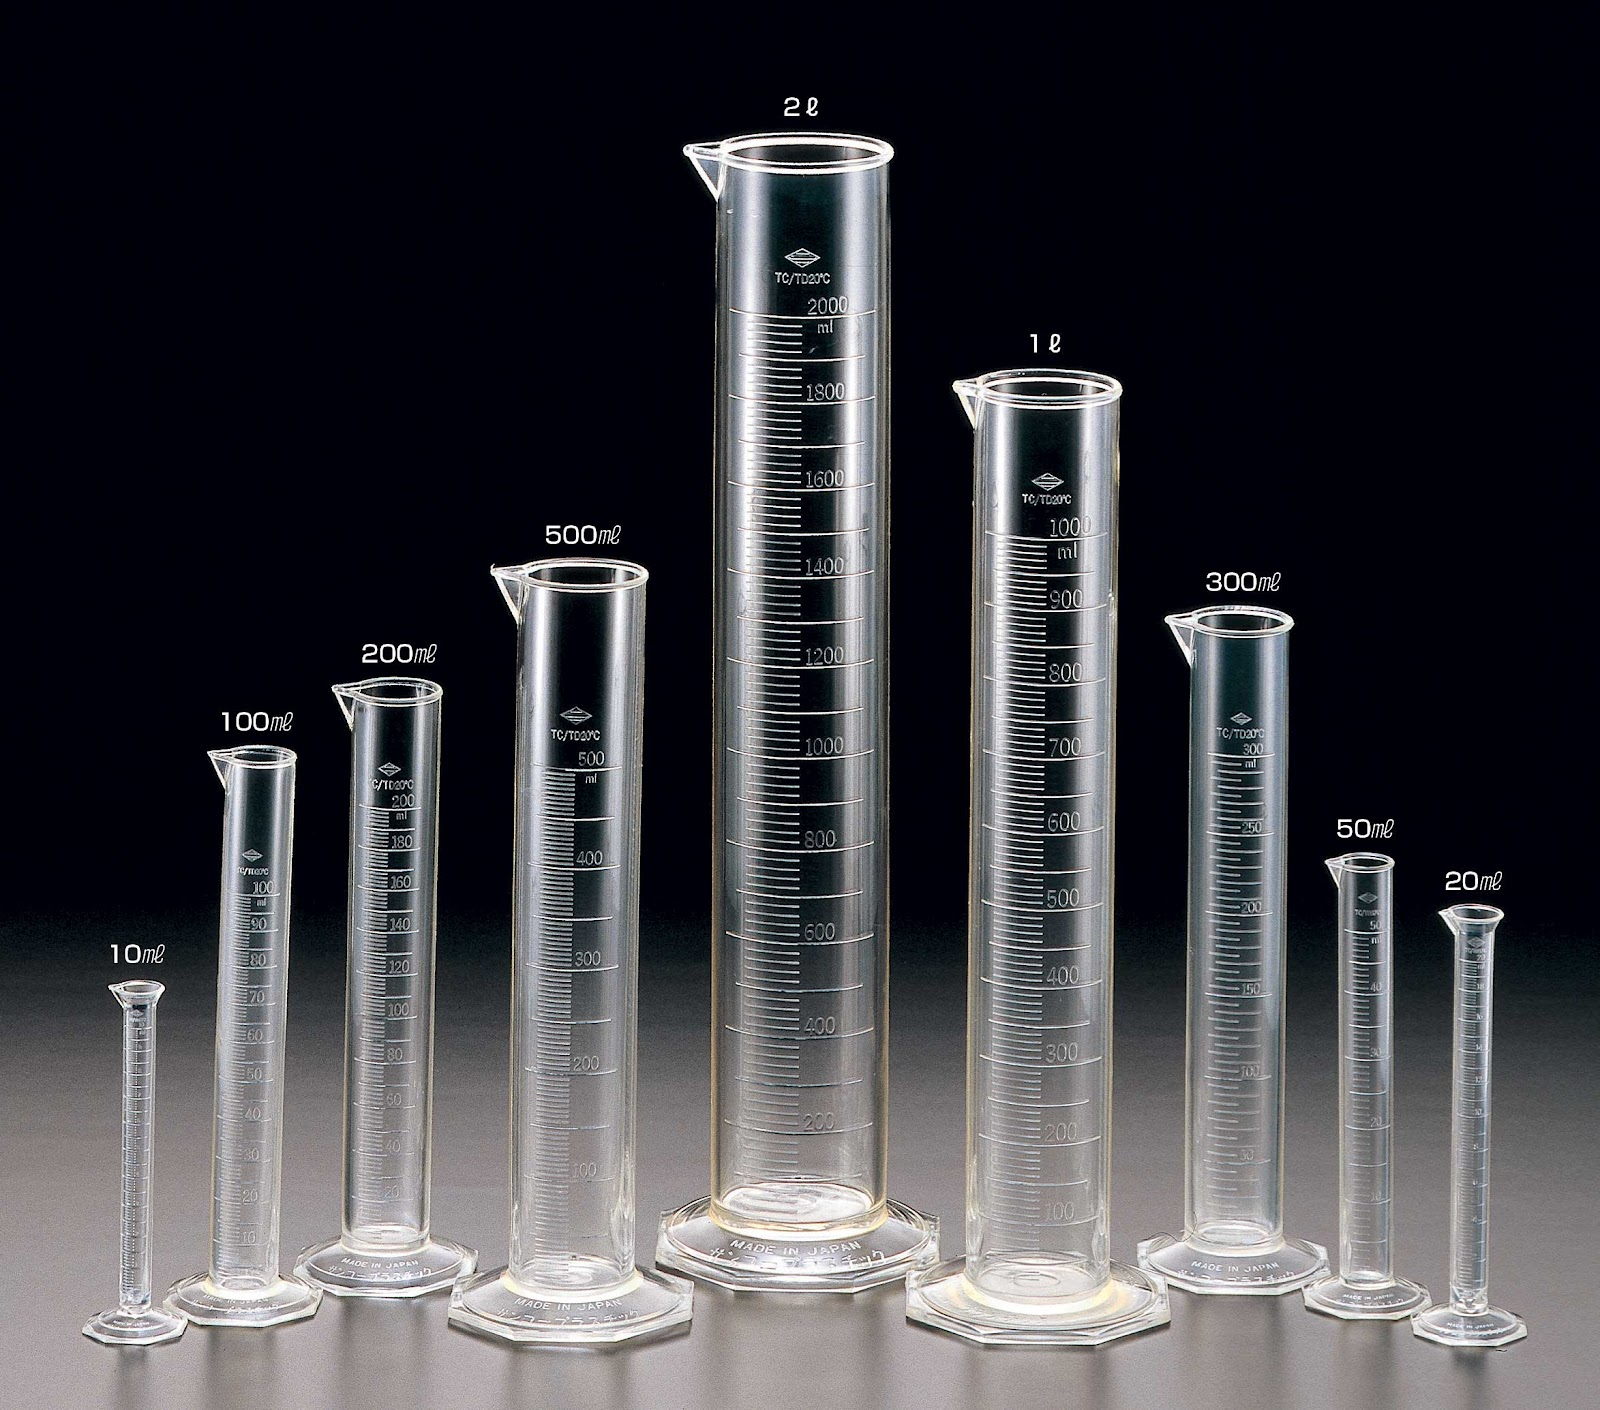 Riana S Blog 20 Laboratory Apparatus And Their Uses